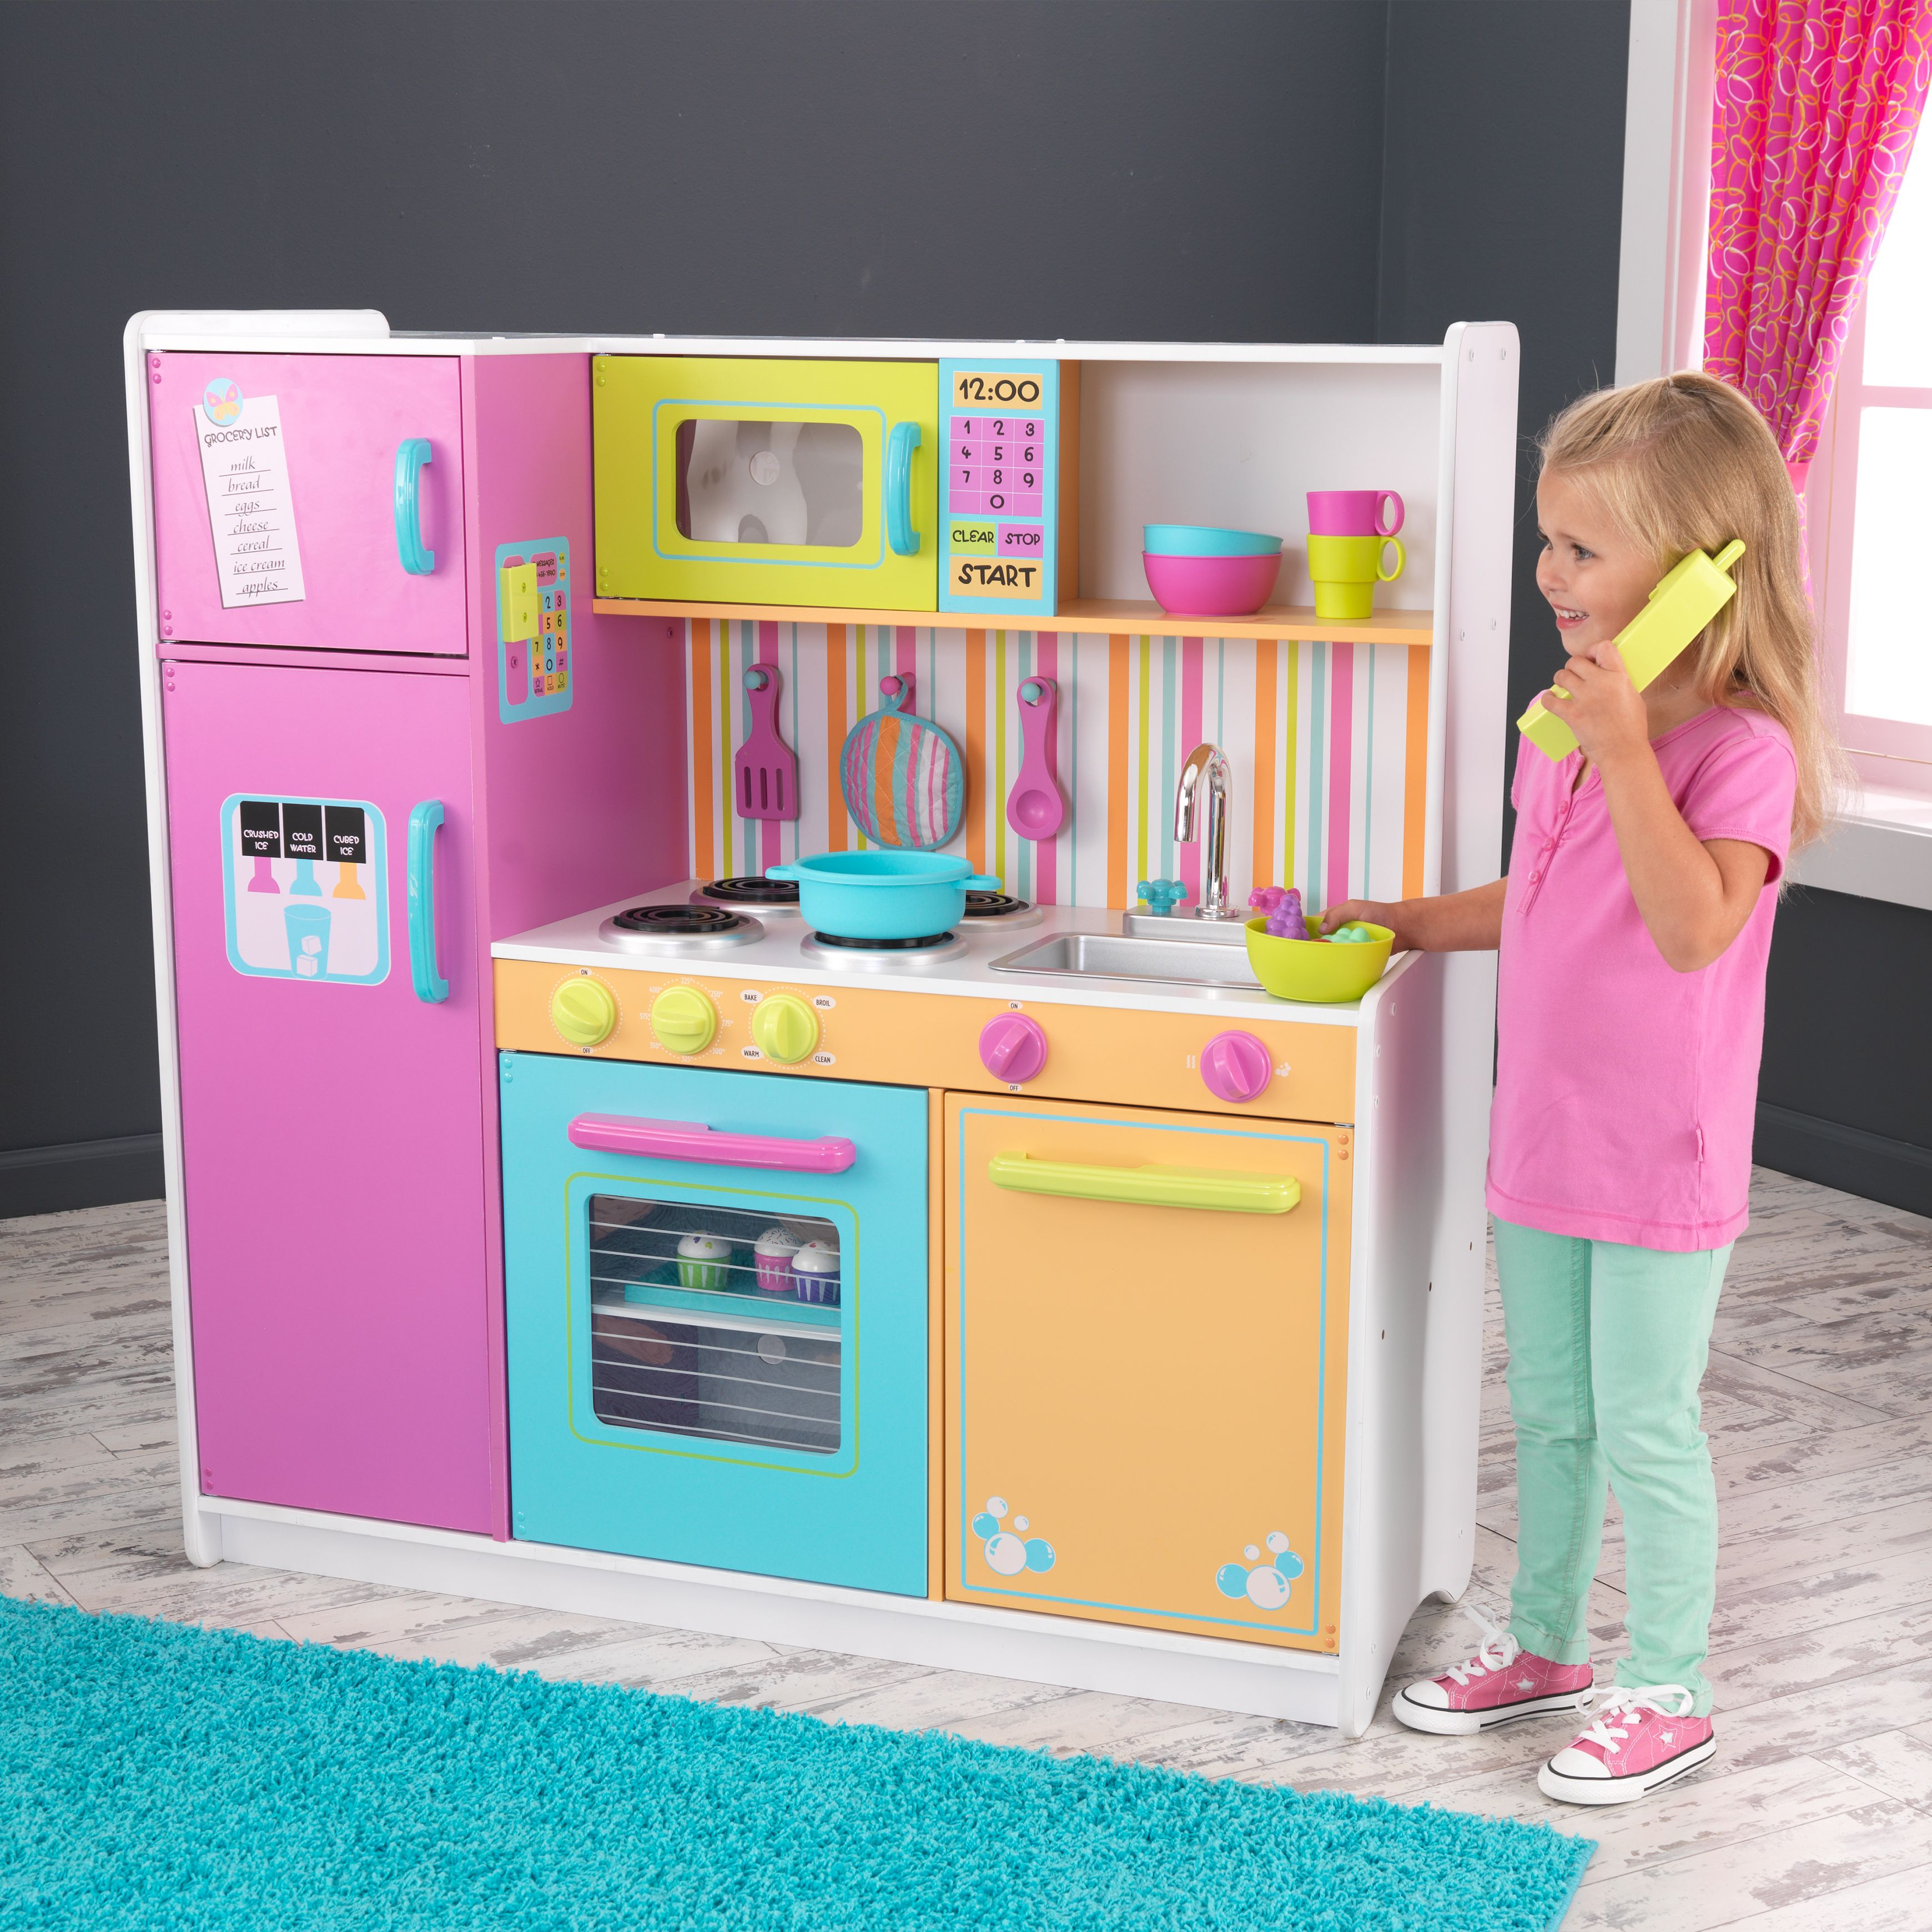 Toys Bright Kitchens Kidkraft Play Kitchen